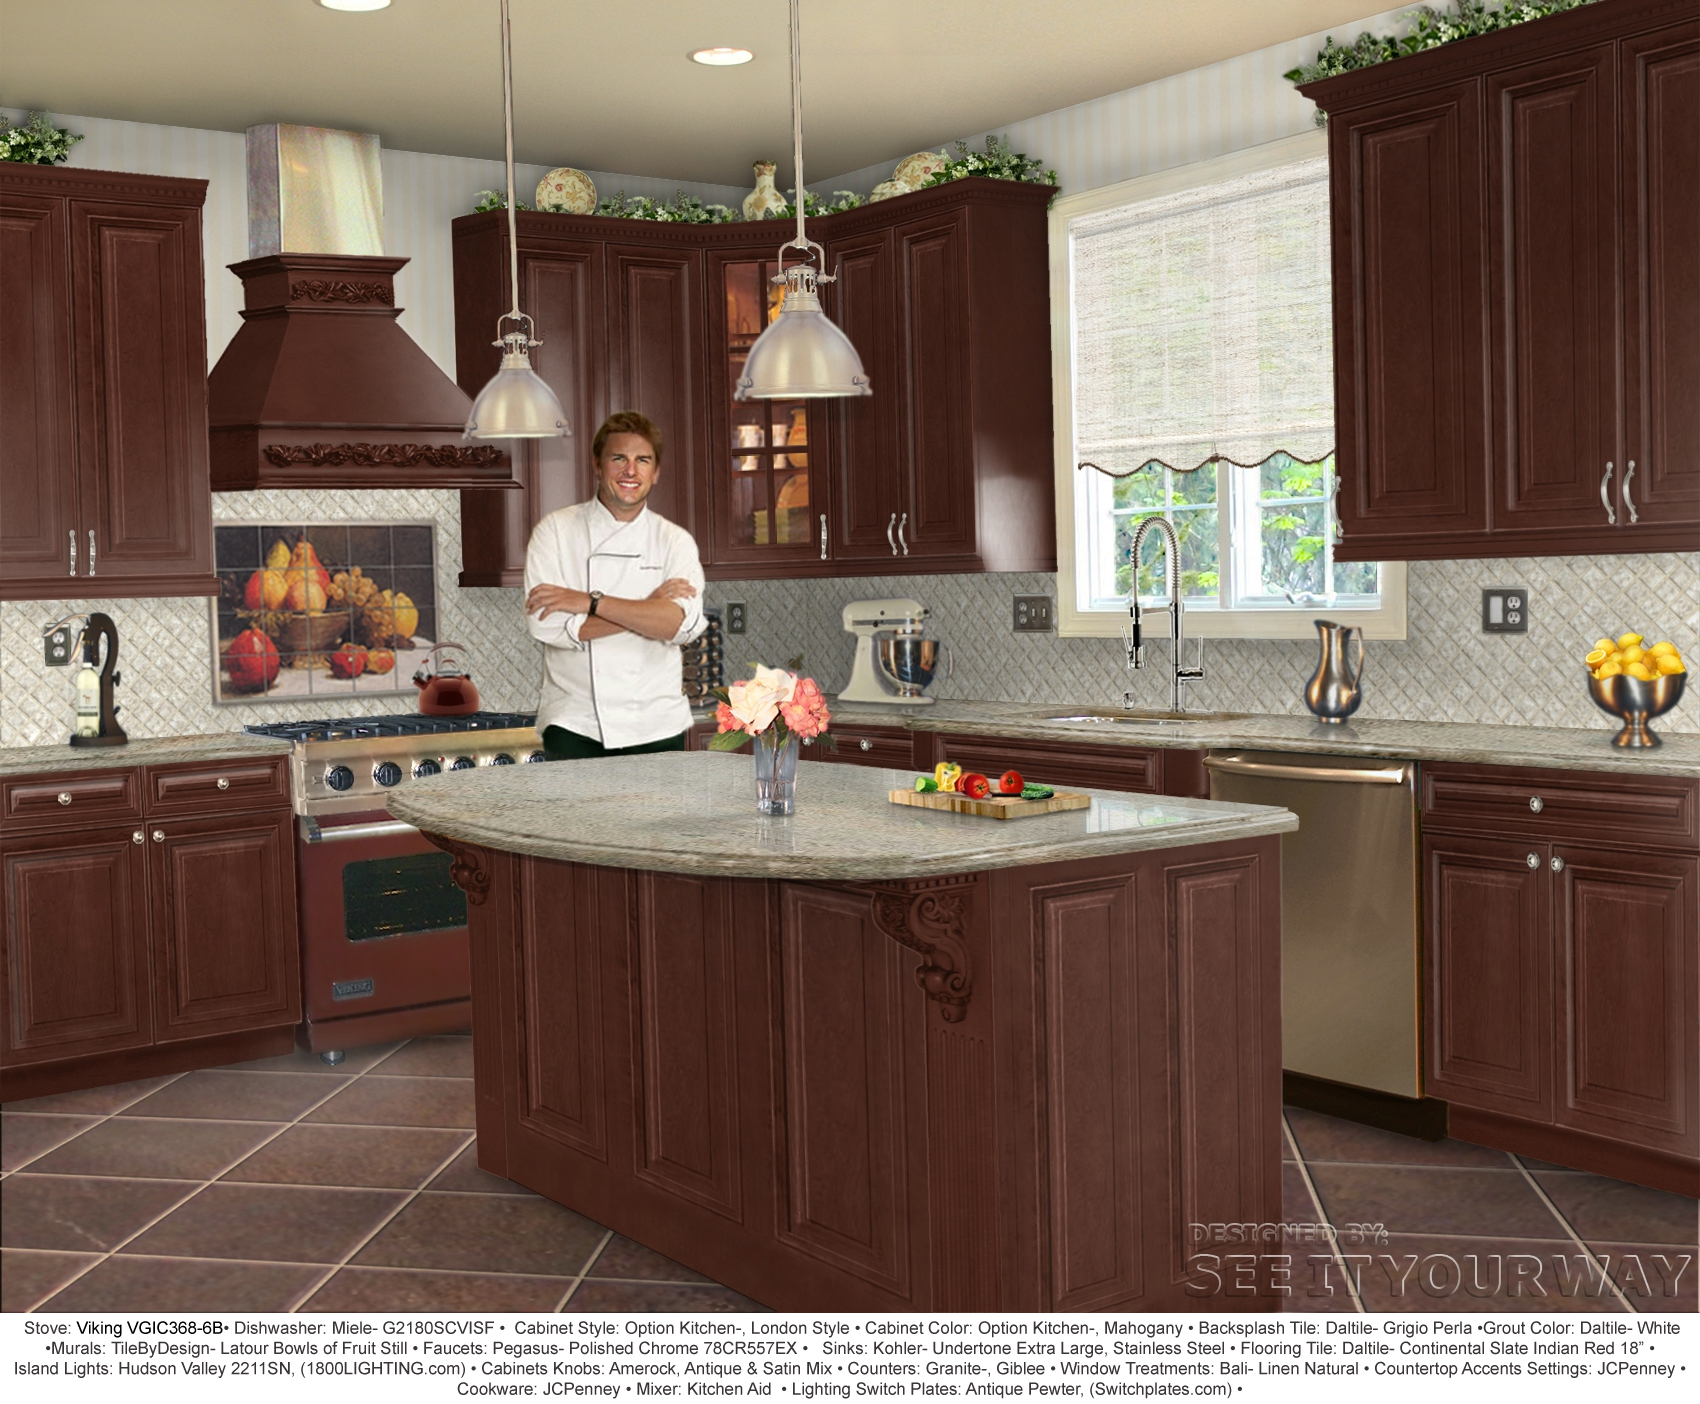 In the behr paint color gallery sample kitchen designs for Kitchen examples